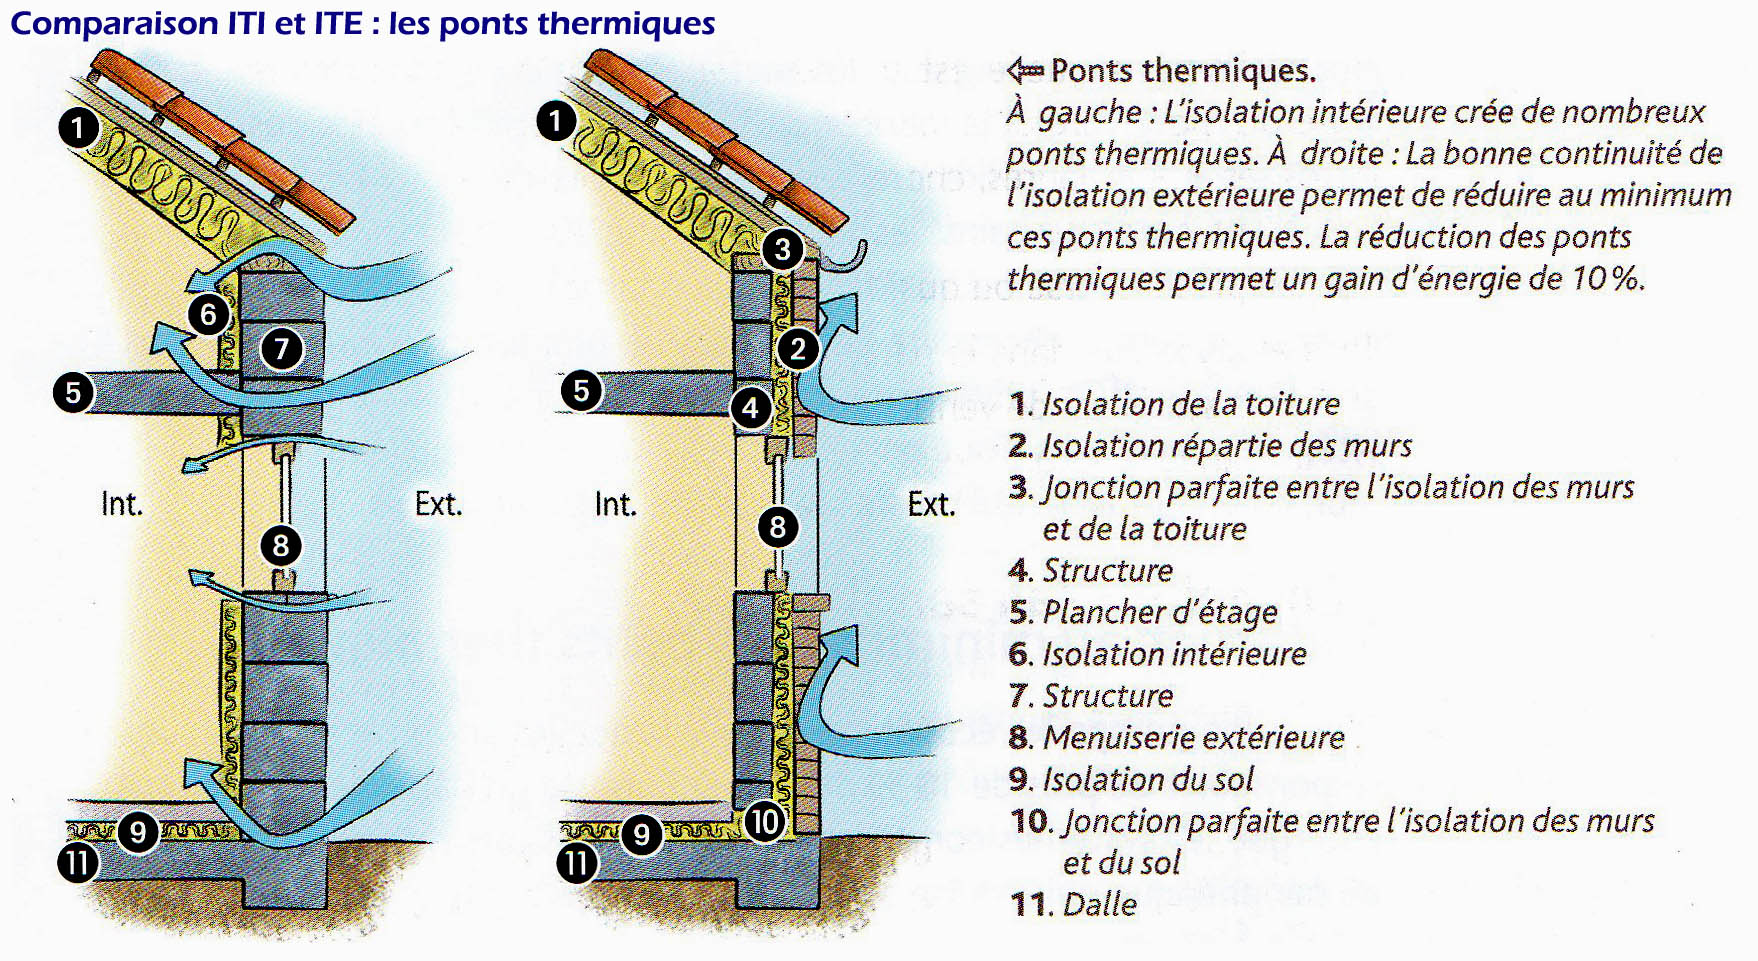 comparatif iti ite ponts thermiques agence pour l 39 isolation. Black Bedroom Furniture Sets. Home Design Ideas